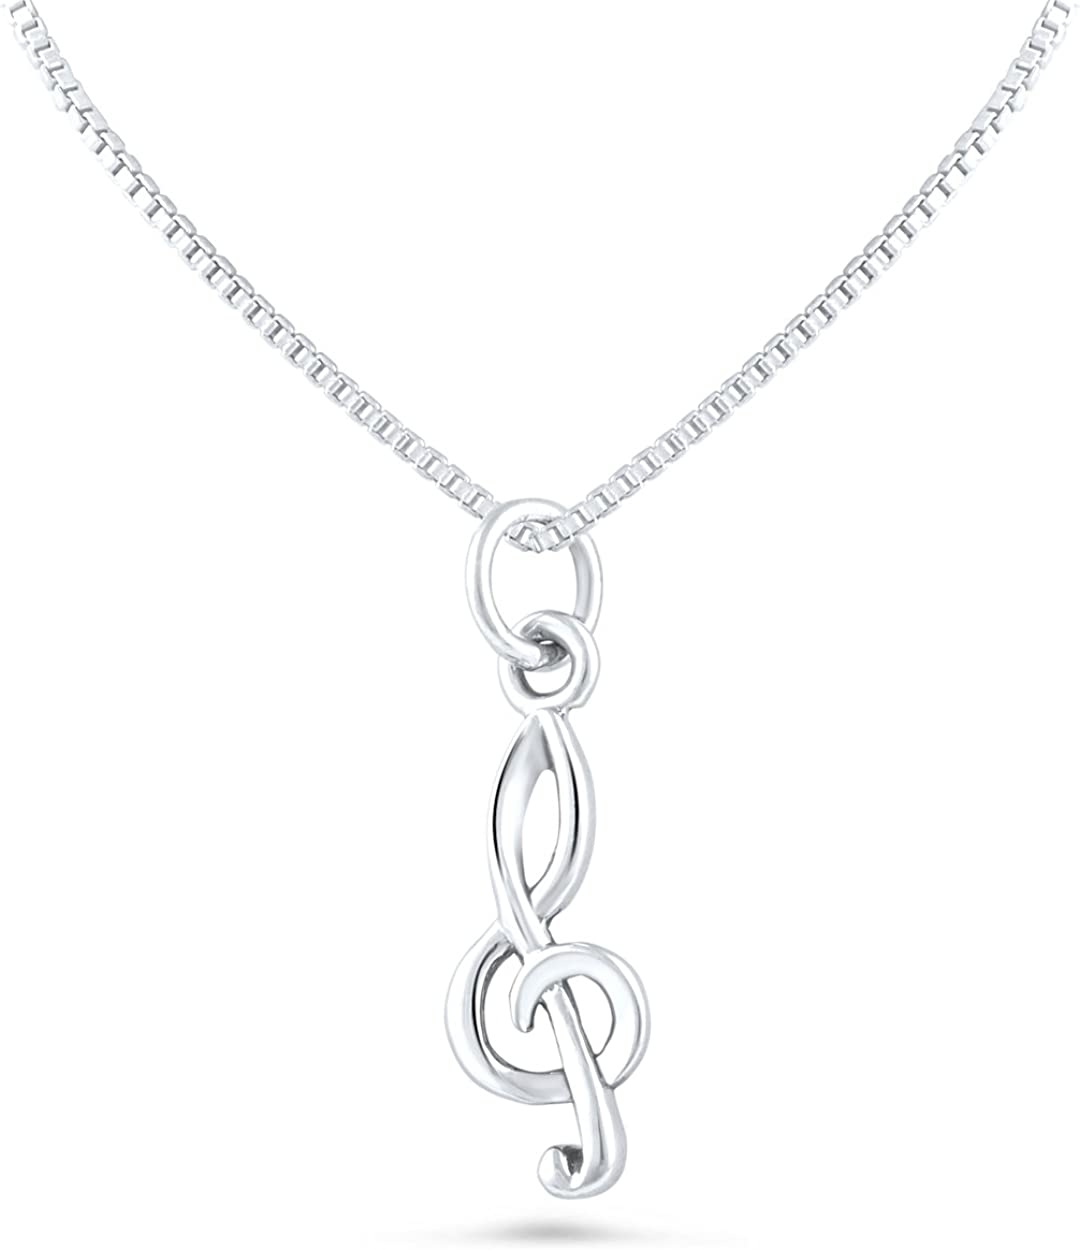 Treble Clef Pendant Sterling Silver 925 Music Symbols Jewelry Gift 32 mm